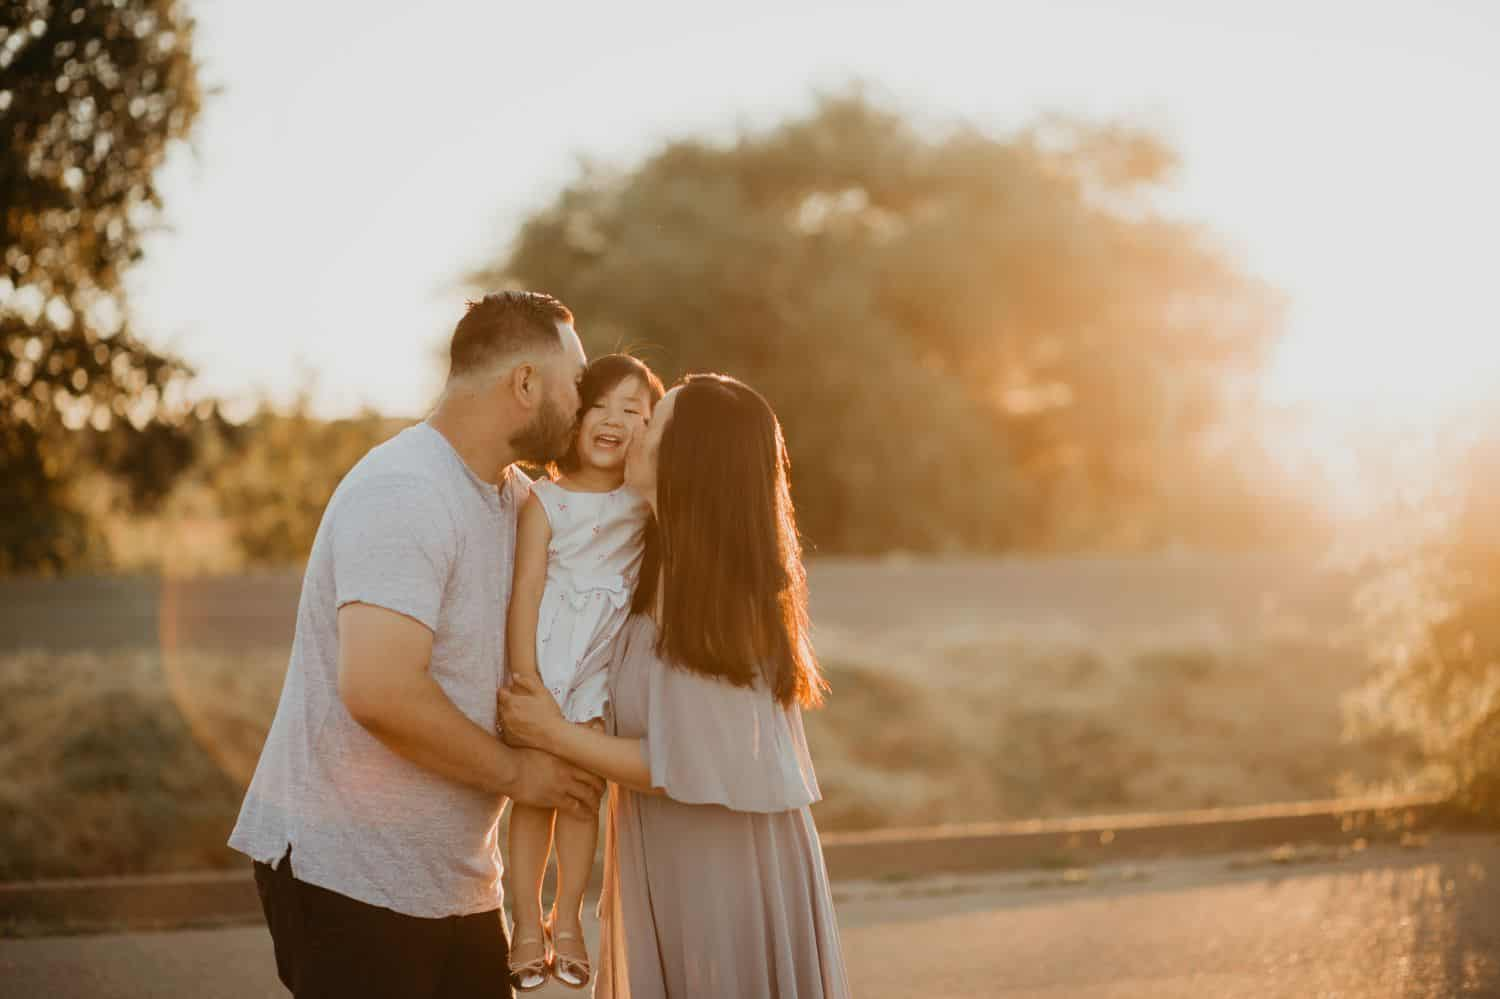 Two parents stand in a circle of sun flare. They're holding their young daughter between them and kissing her on both cheeks.